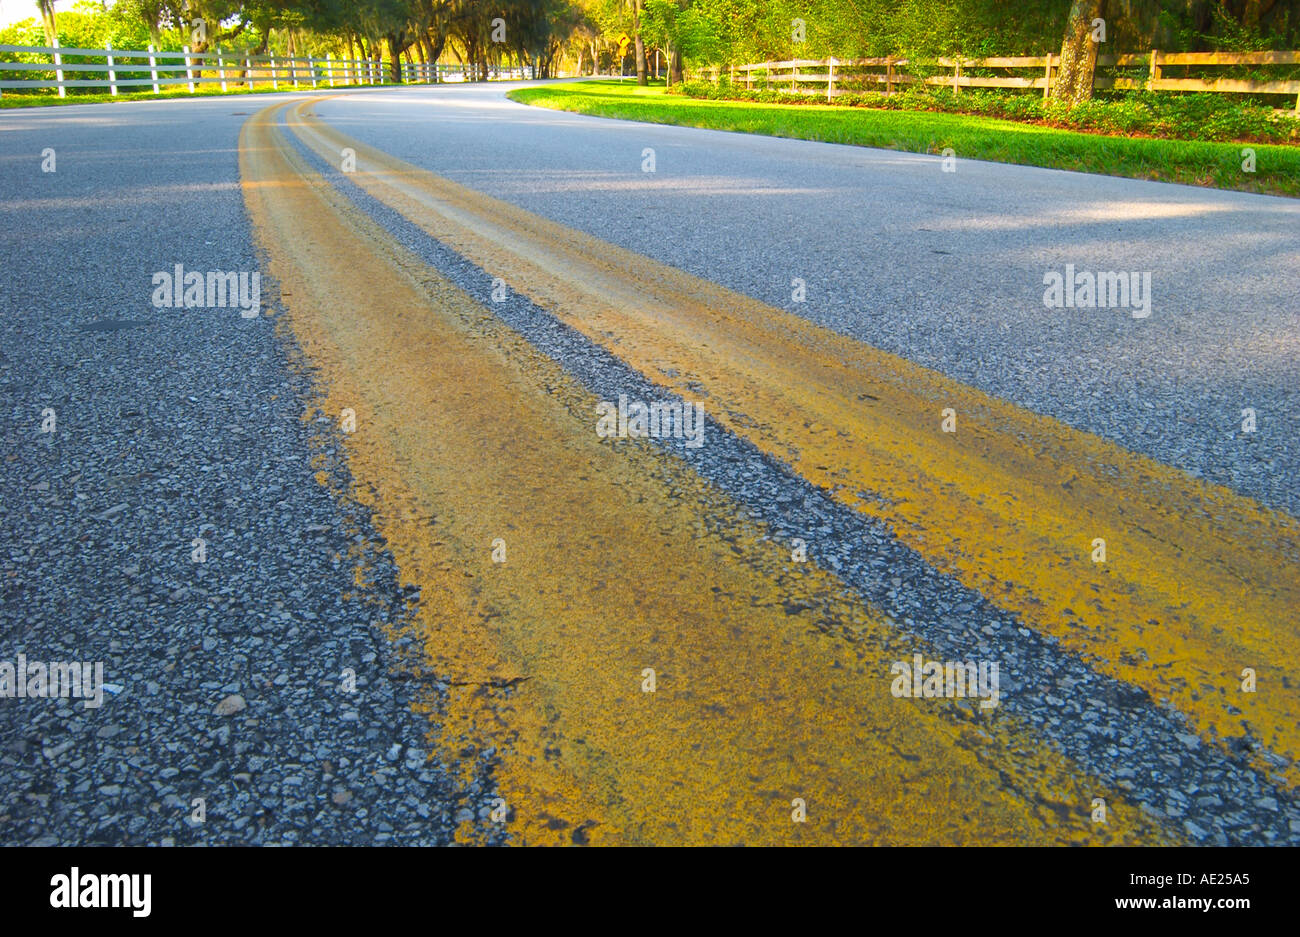 solid yellow lines on road mark no passing zone - Stock Image